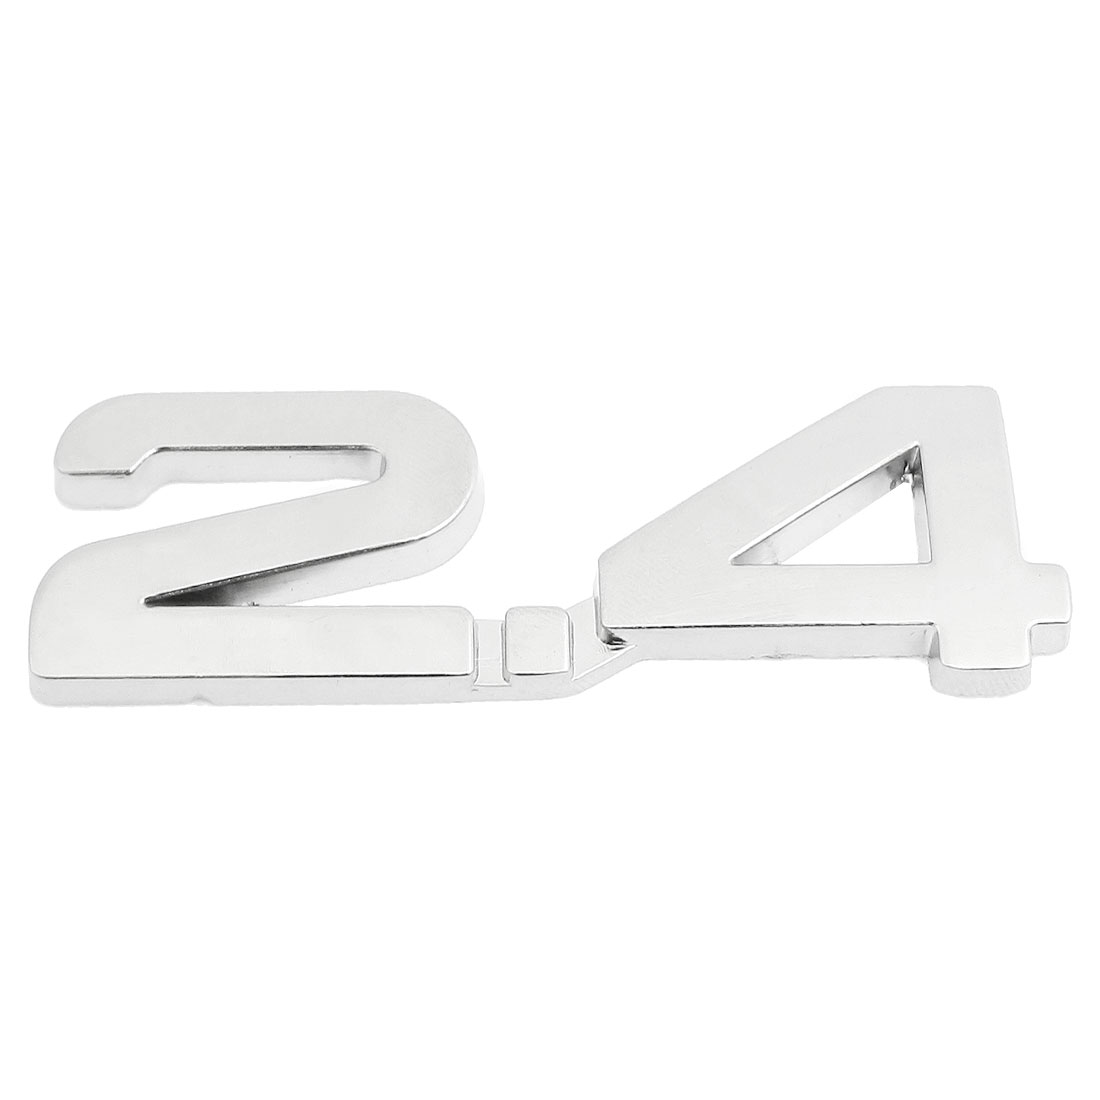 Car Autos Alloy 2.4 Decal Emblem 3D Badge Sticker Decor Silver Tone